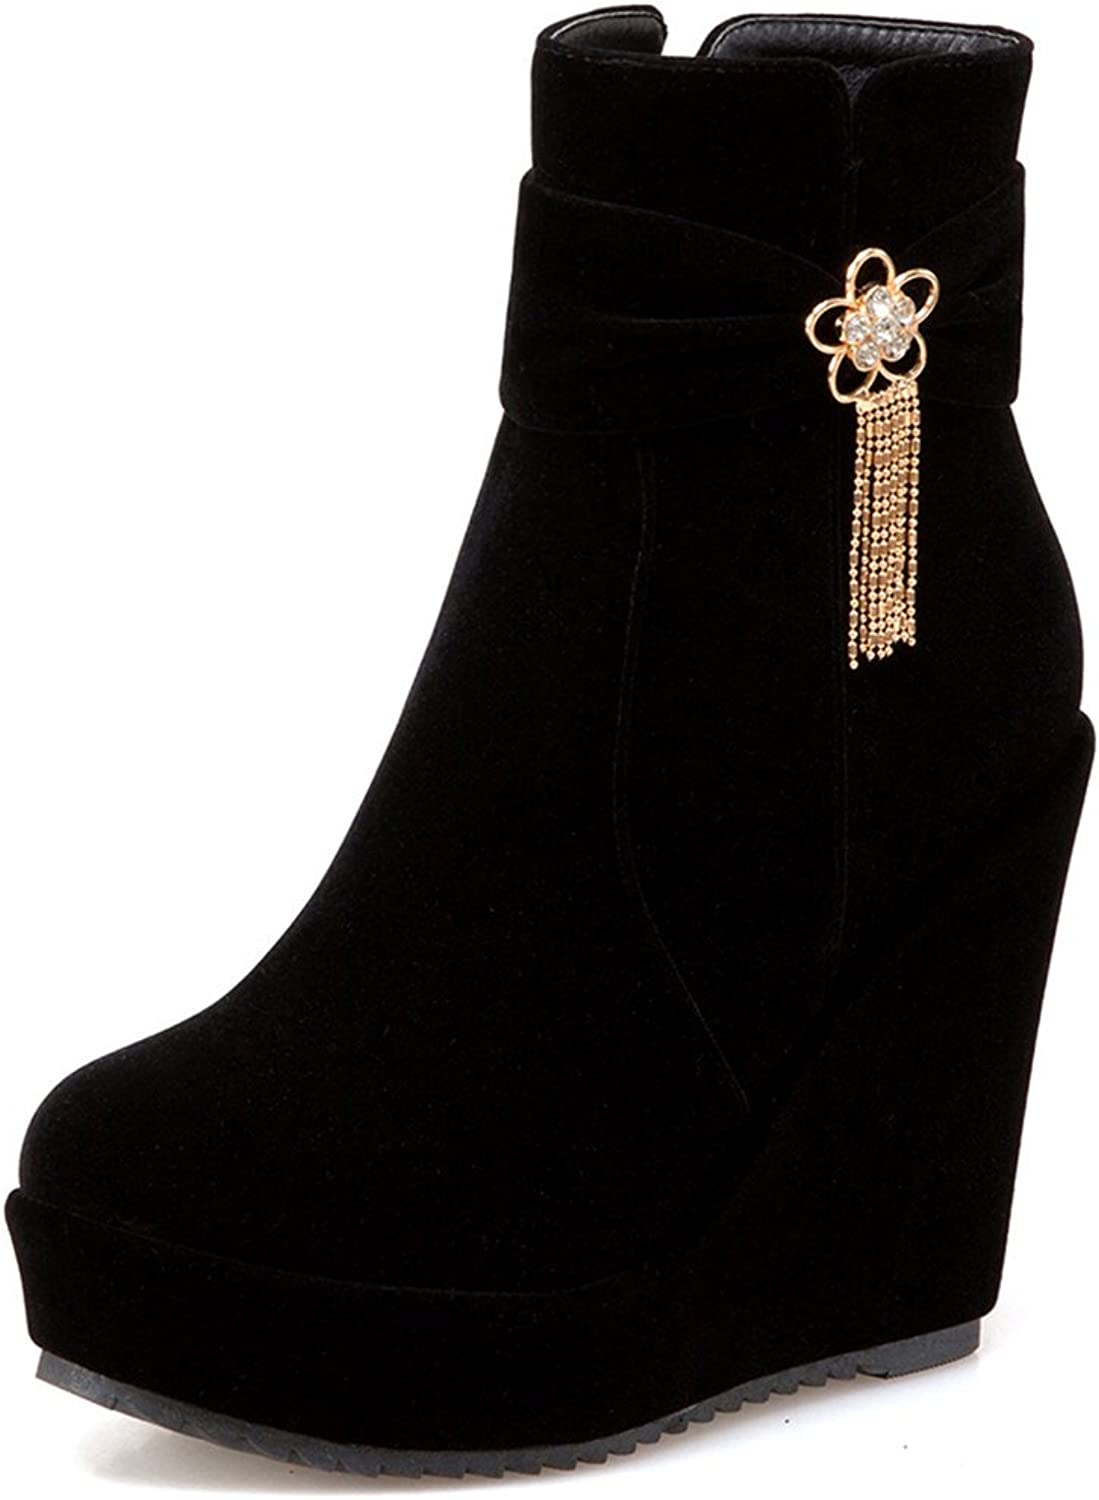 SaraIris Zipper Pendant Platform Increased Inside Solid Ankle Boots for Women